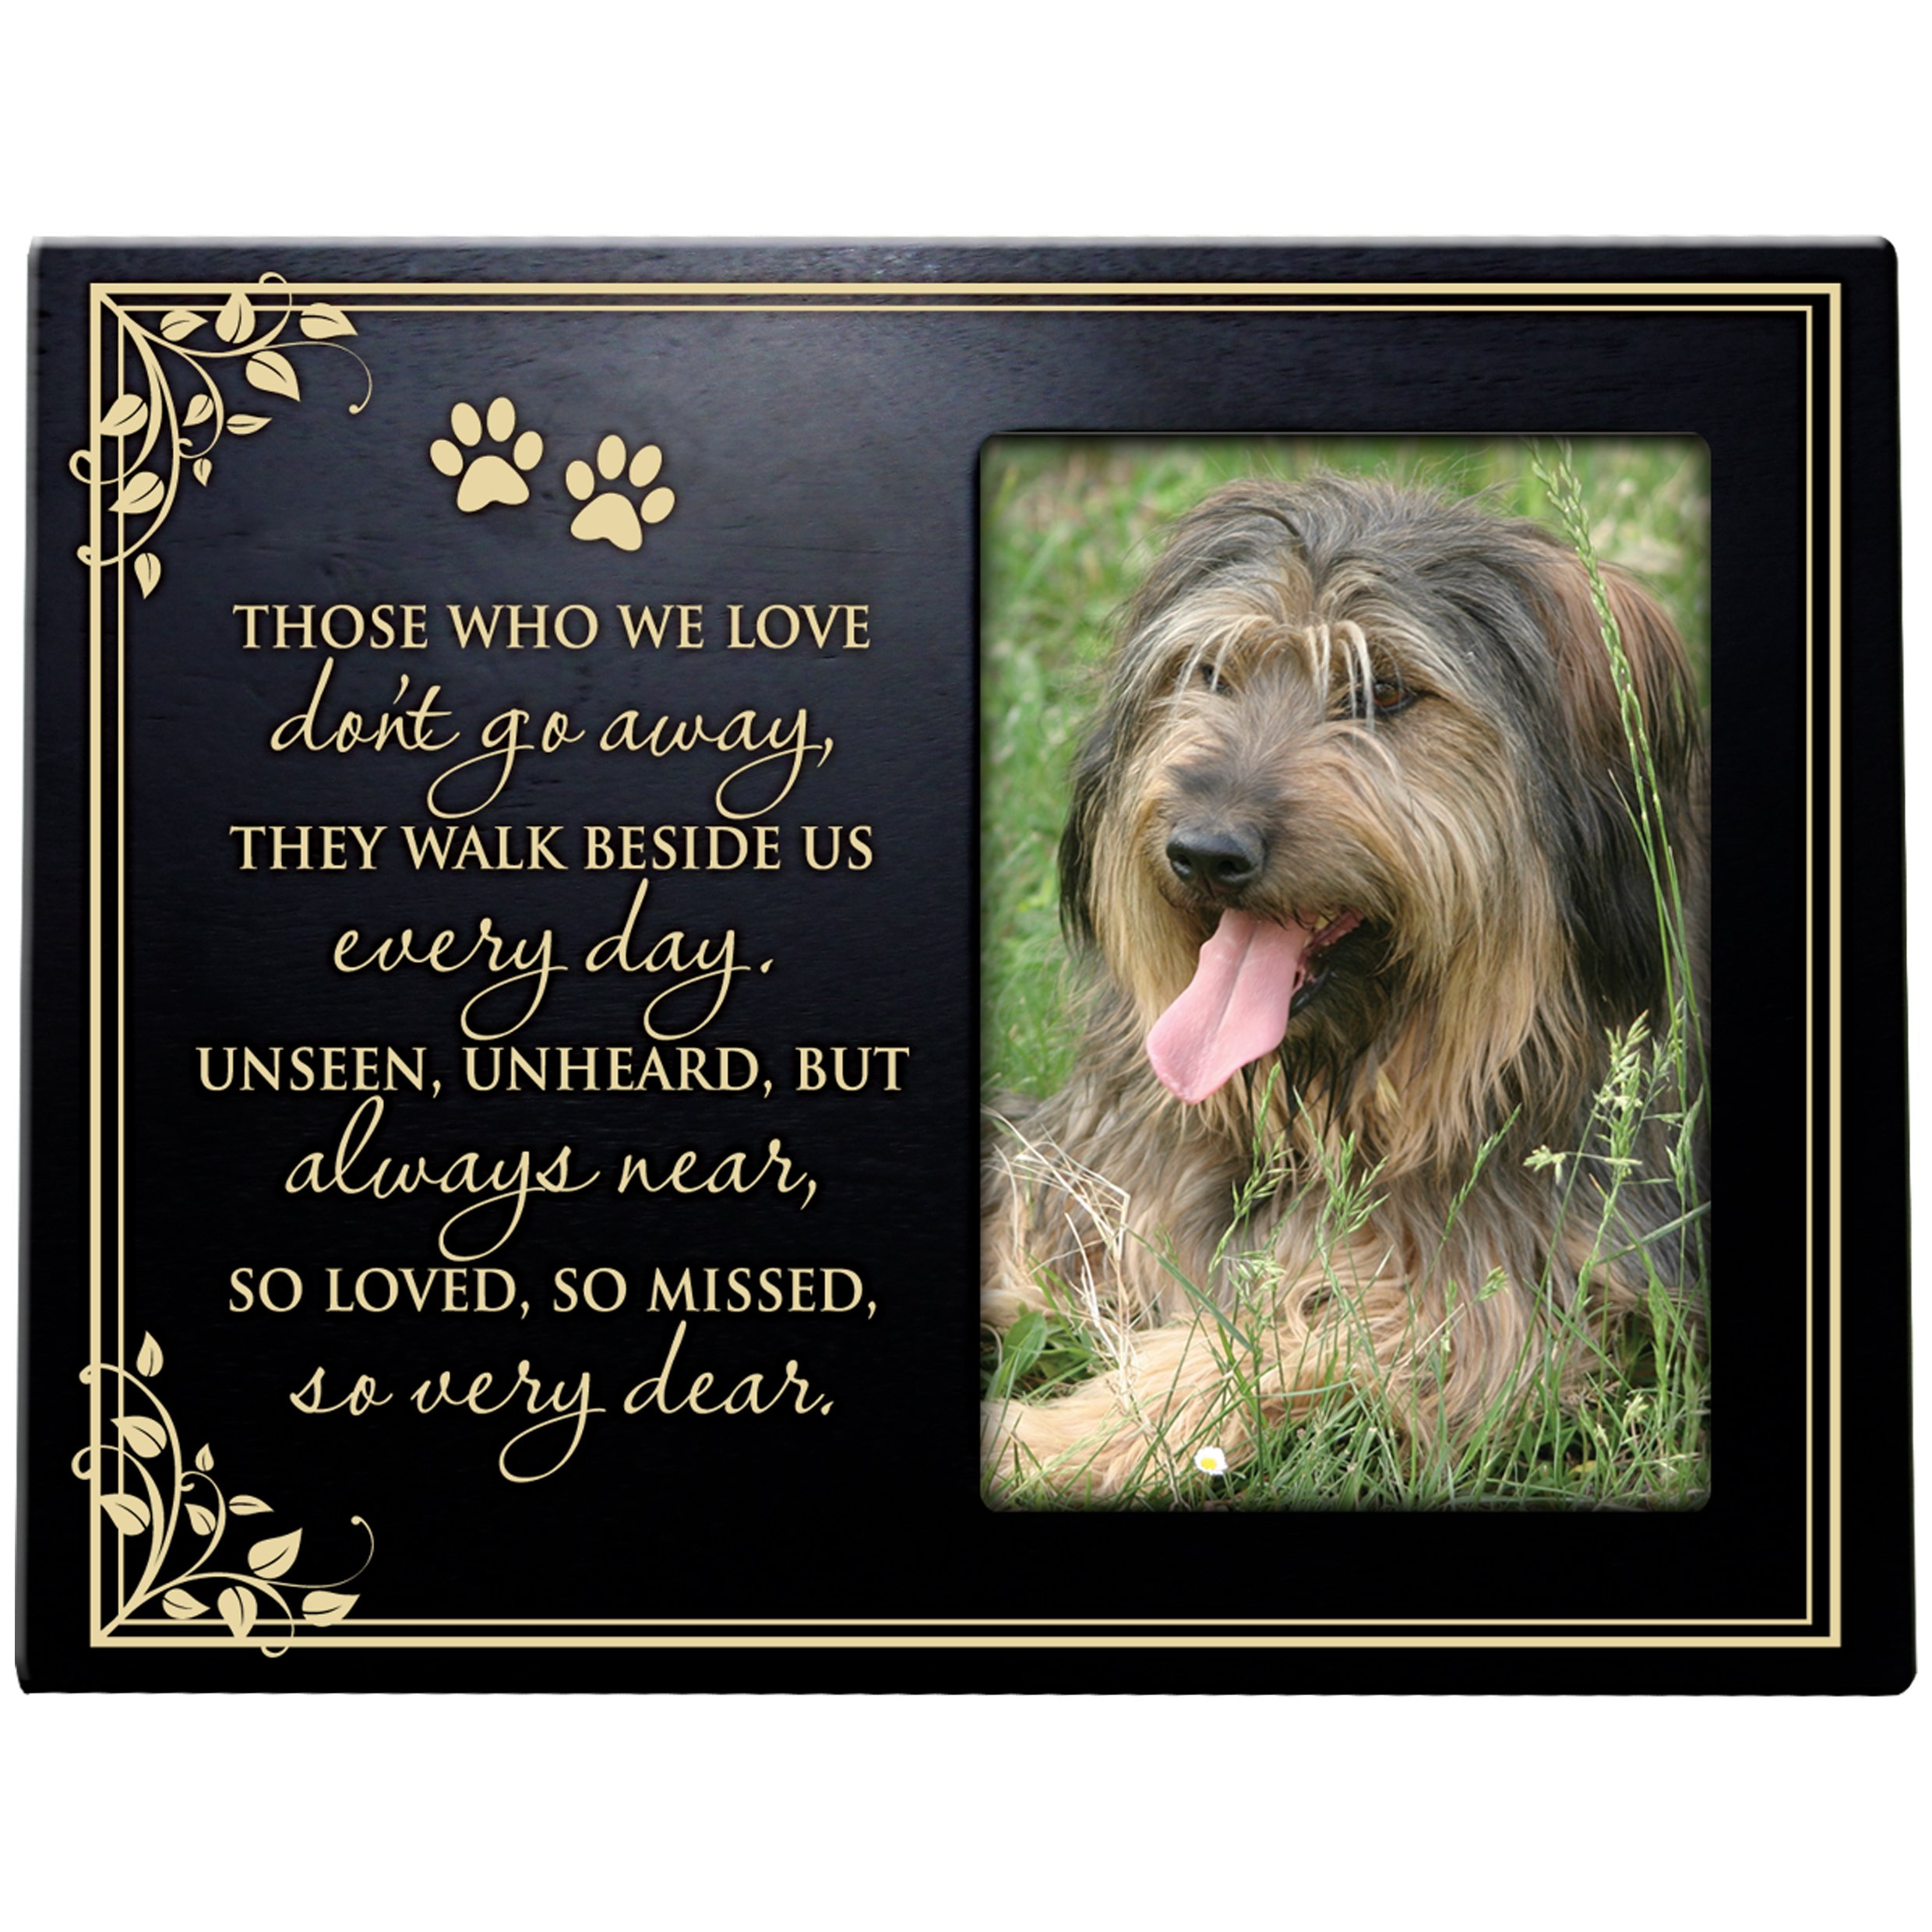 Pet Memorial Sympathy Bereavement Photo Frame Those We Love don't go away They walk beside us every day Frame Holds 4x6 Photo (Black) by LifeSong Milestones